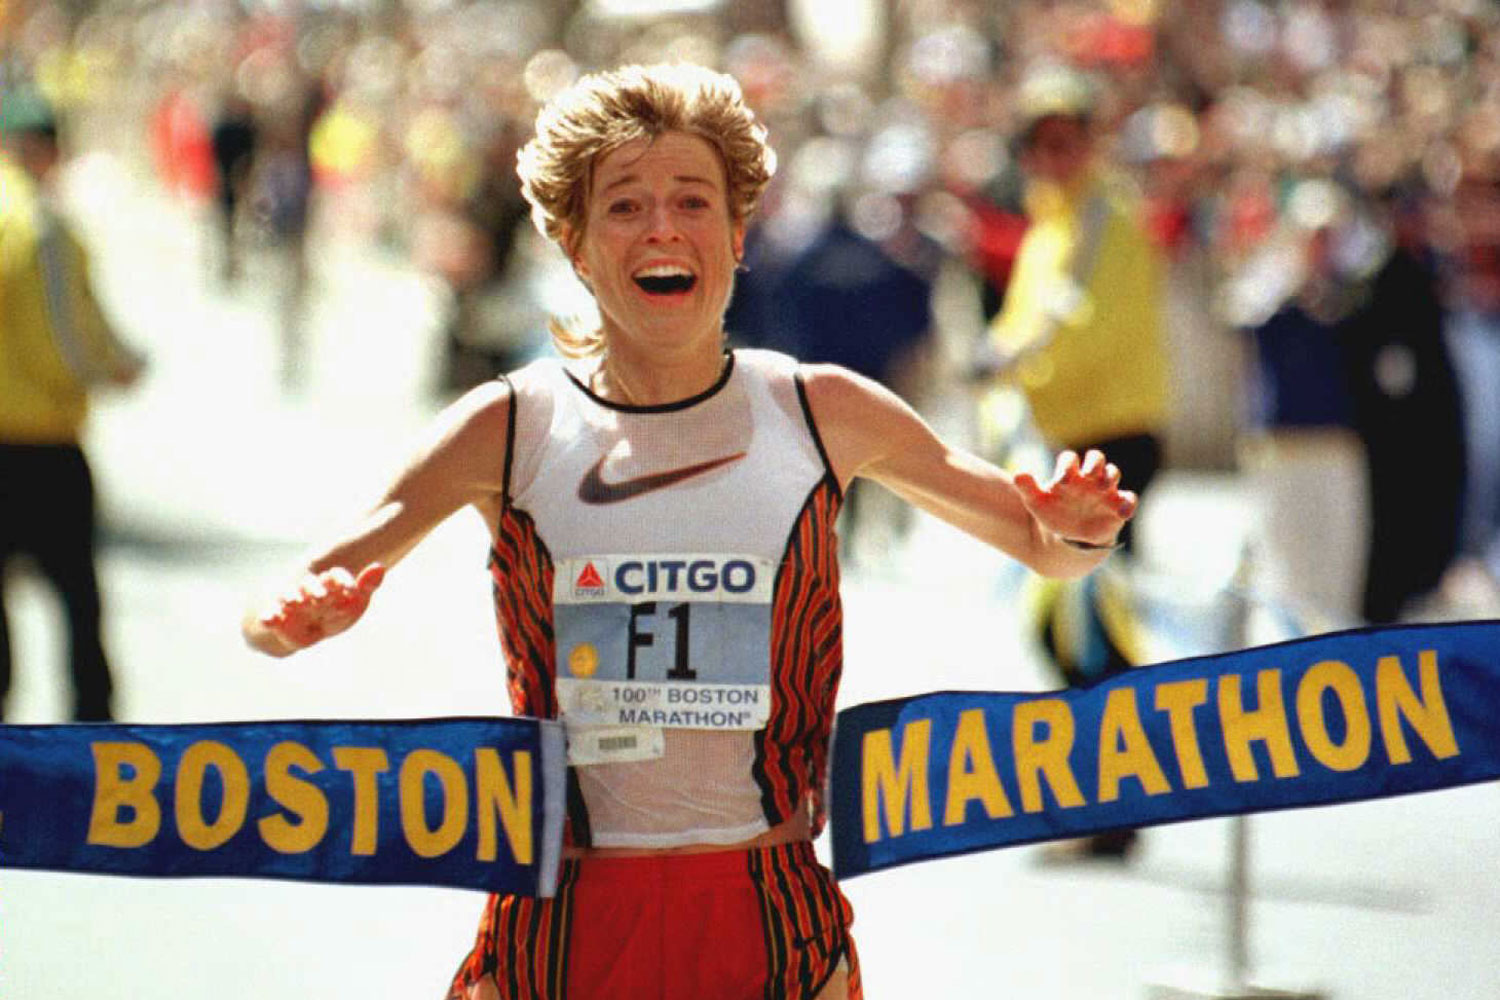 Uta Pippig crosses the finish line to win the women's division in the 100th running of the Boston Marathon.